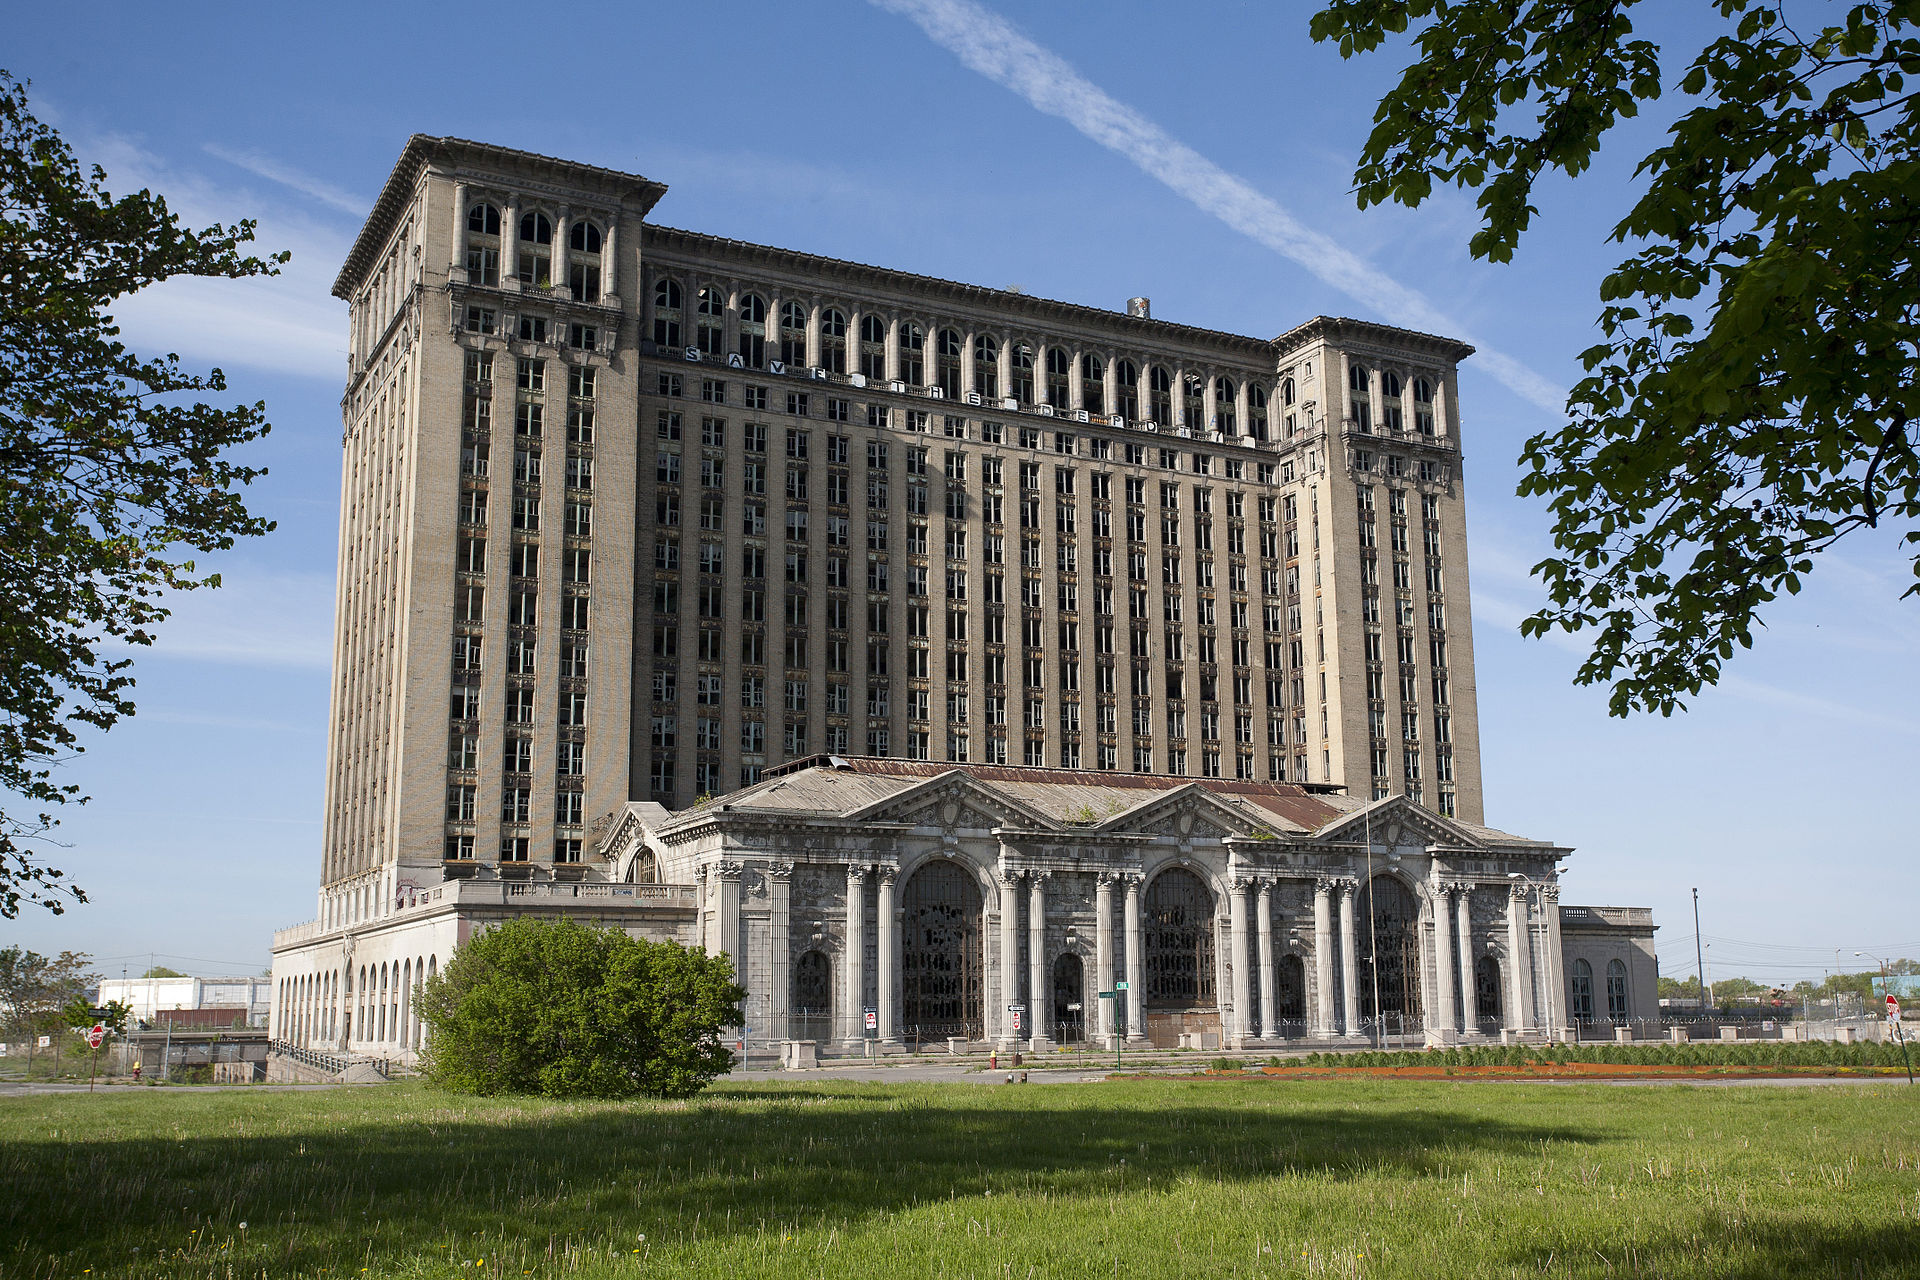 Michigan Central Train Station in Detroit. Photograph from  Wikimedia .